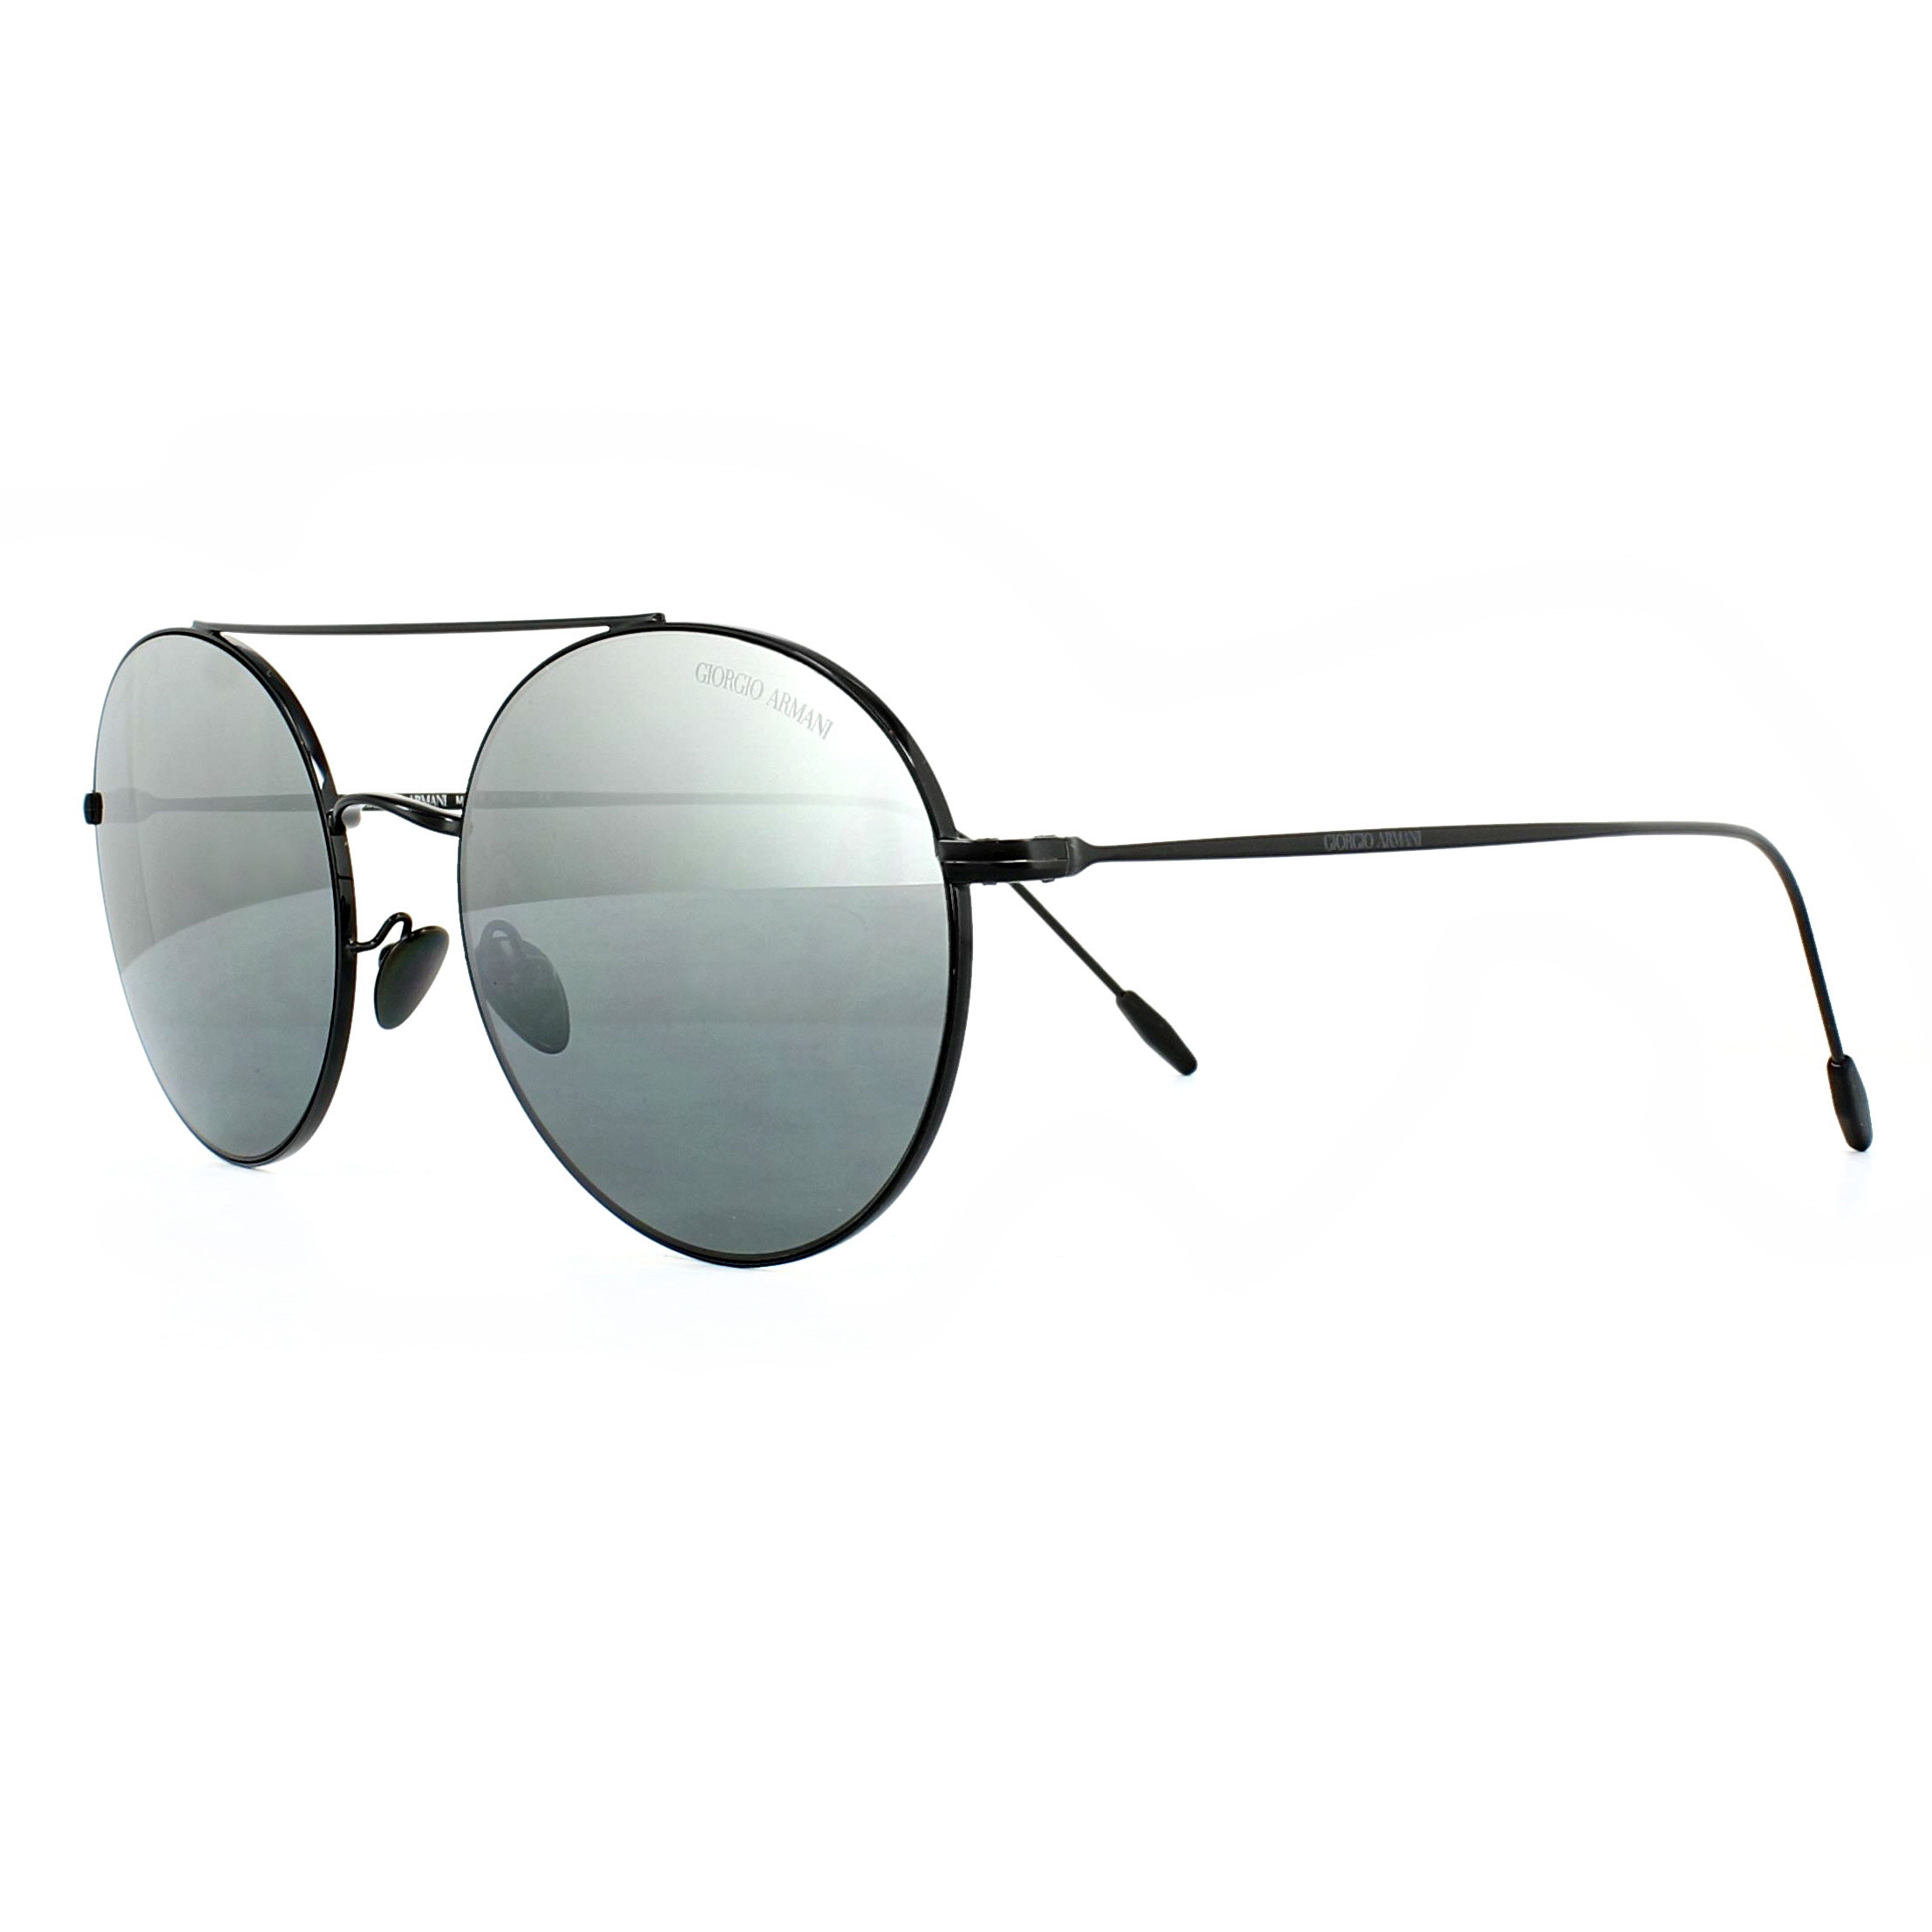 d2b616d6aad9 Cheap Giorgio Armani AR6050 Sunglasses - Discounted Sunglasses